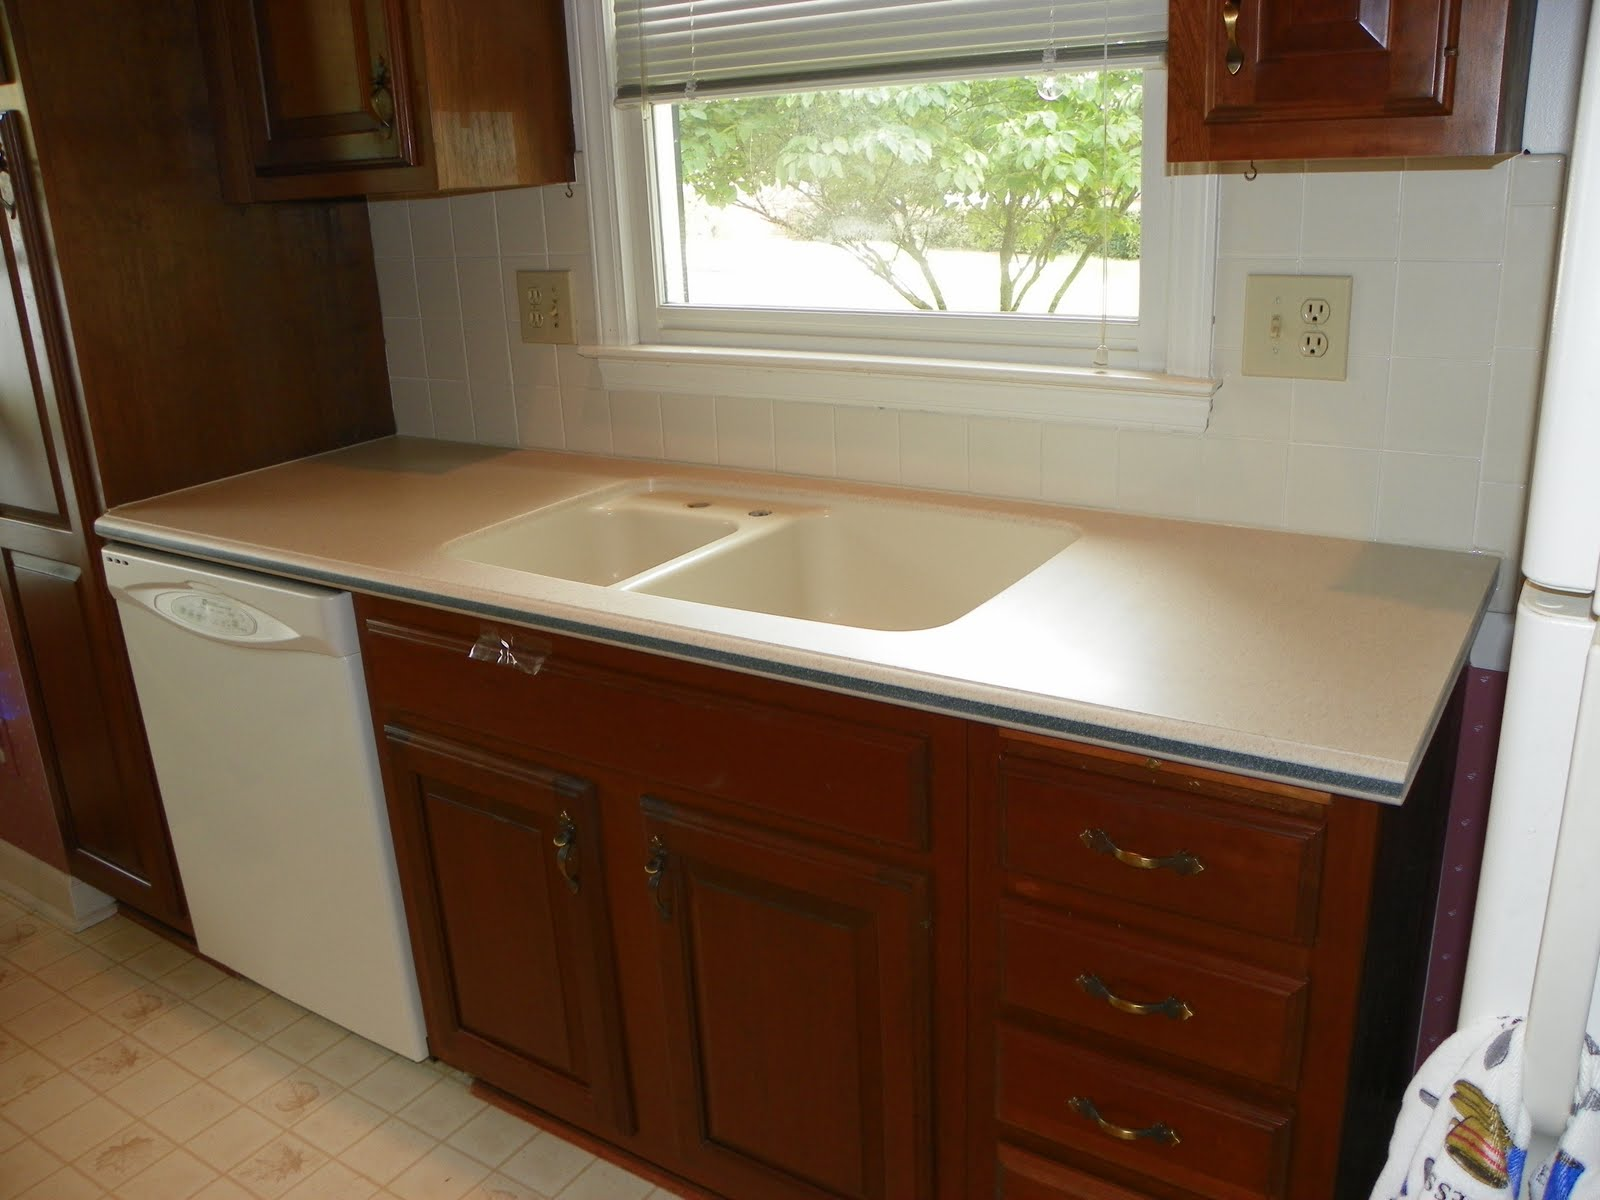 Retro Fab, Recycle, Re Use Corian Countertop, Winston Salem, NC. Done By  Complete Solid Surface Refinishing In Beautiful North Carolina!